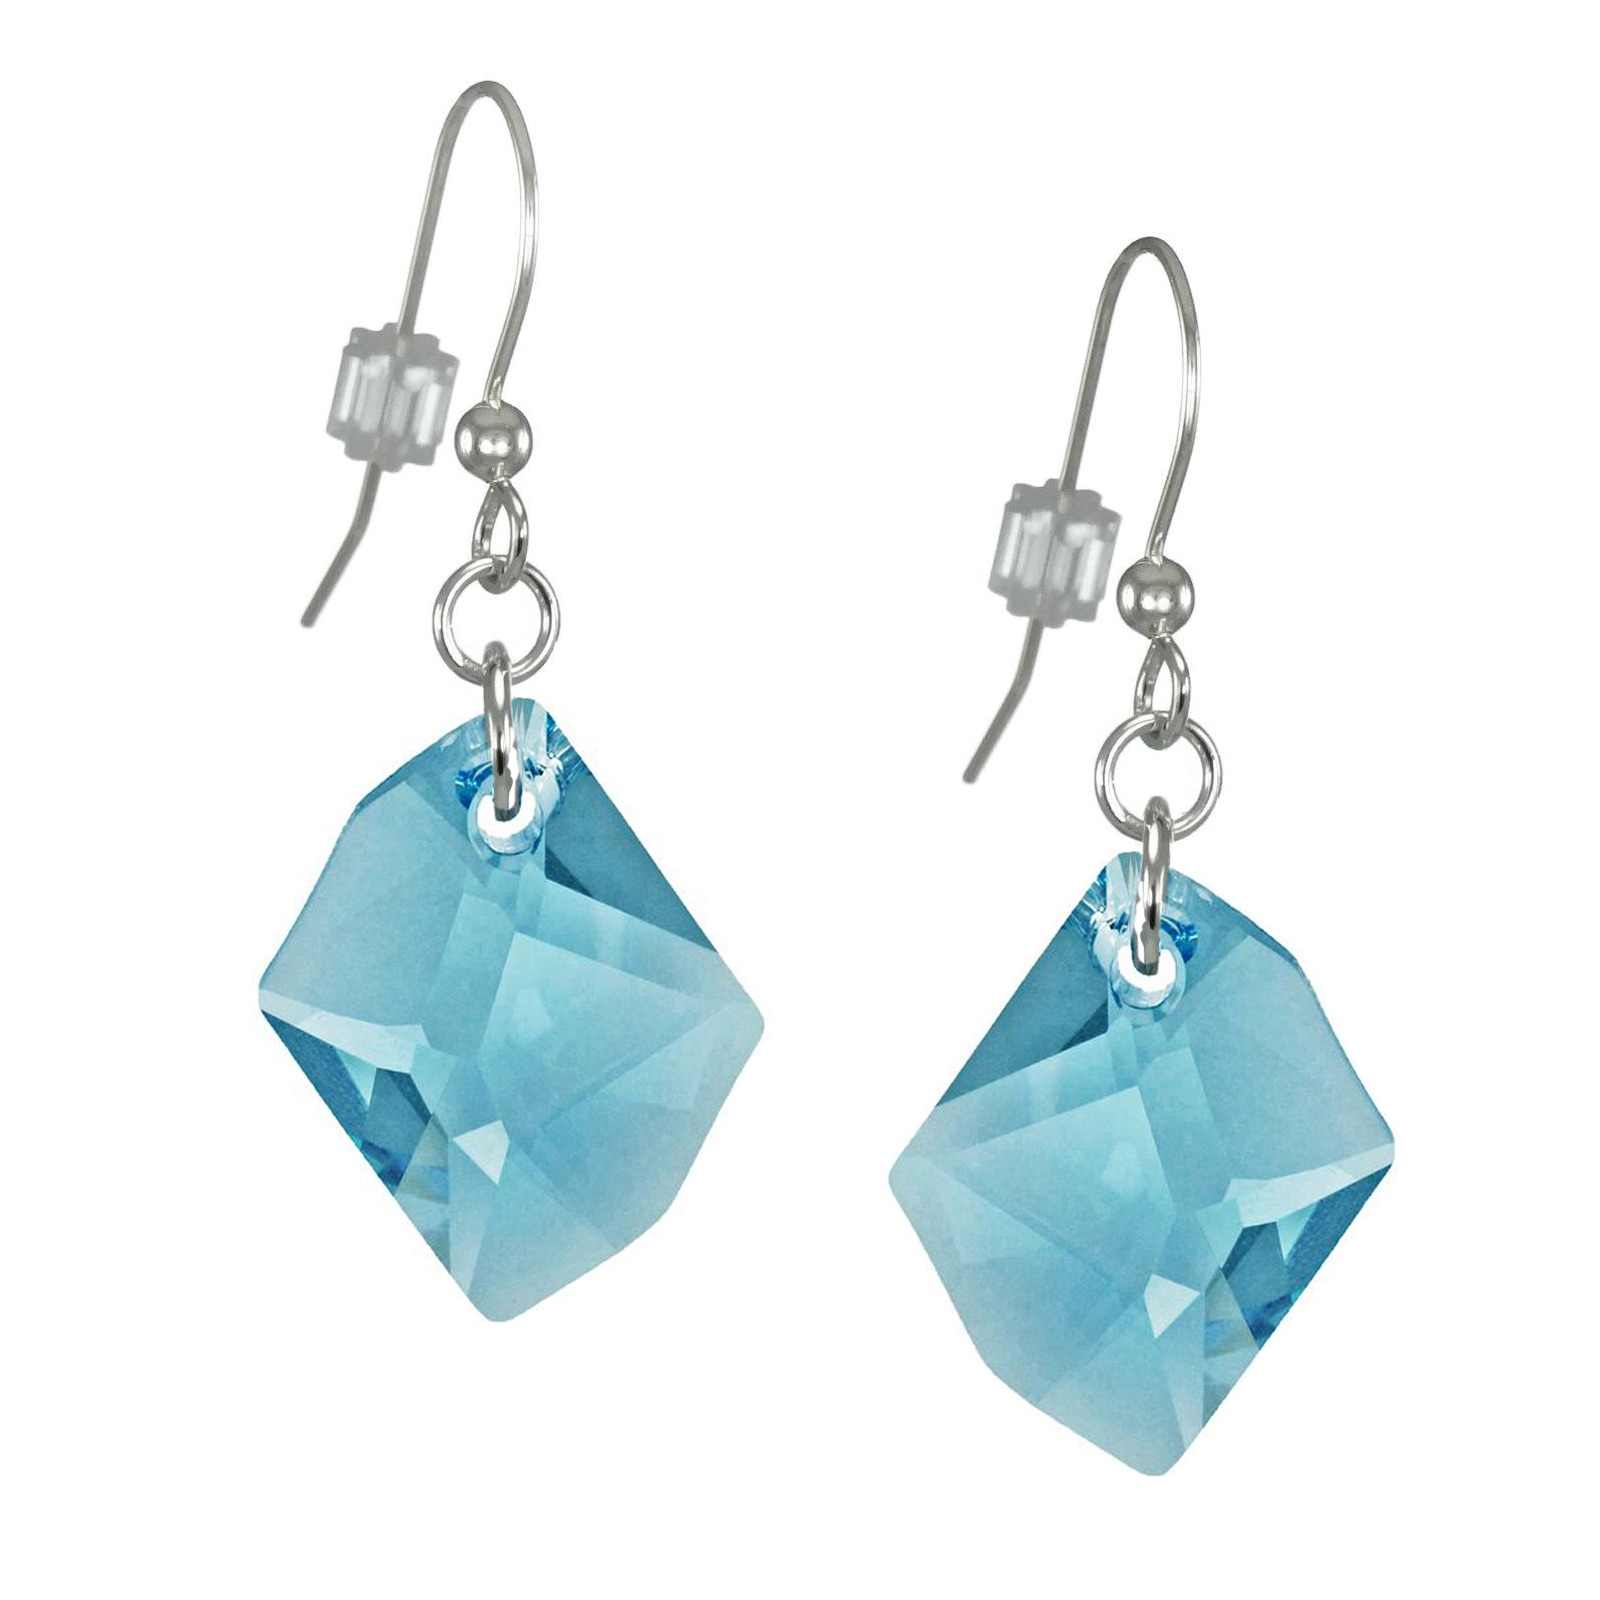 360cc0535 Handmade Jewelry by Dawn Large Aquamarine Swarovski Cosmic Crystal Sterling  Silver Earrings (USA)